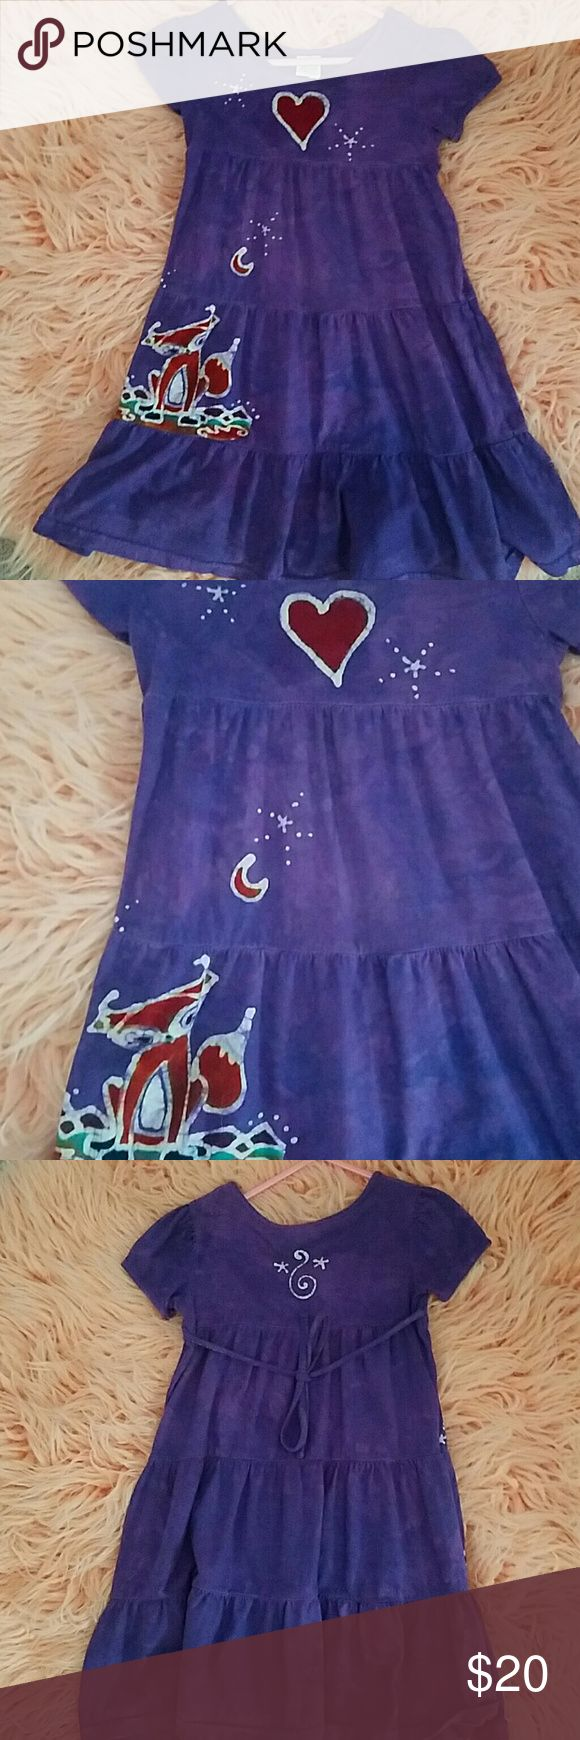 Festival dress size 2 Perfect festival dress! Dharma trading co. Size 2t, but still could fit my 4 year old. I think their sizes run big. Purple tye-dyeish with super cute fox moon and heart. Ties in back. Sad to see this one go! Dharma trading co. Dresses